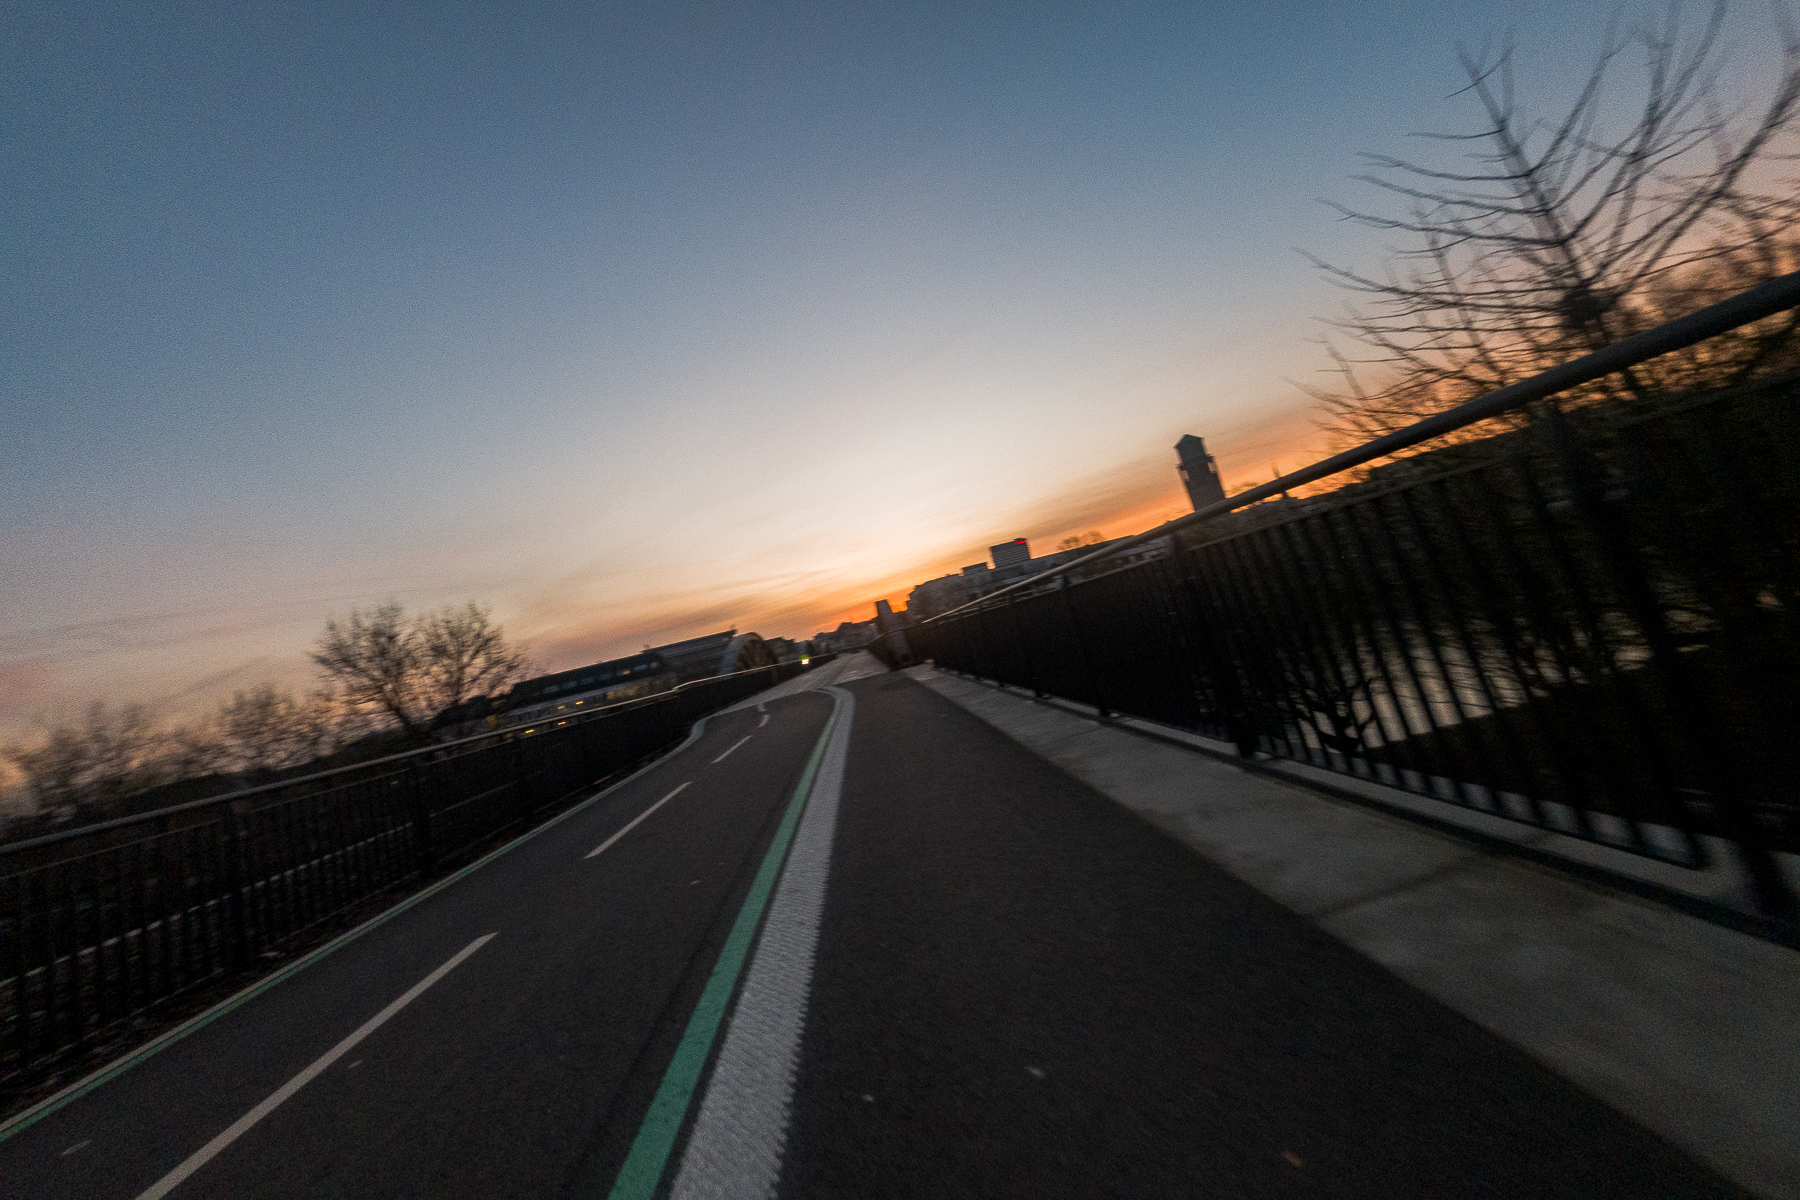 Quiet sunrise on the bike expressway, a special bike and pedestrian street that crosses through Mülheim. Germany, March 18, 2020.